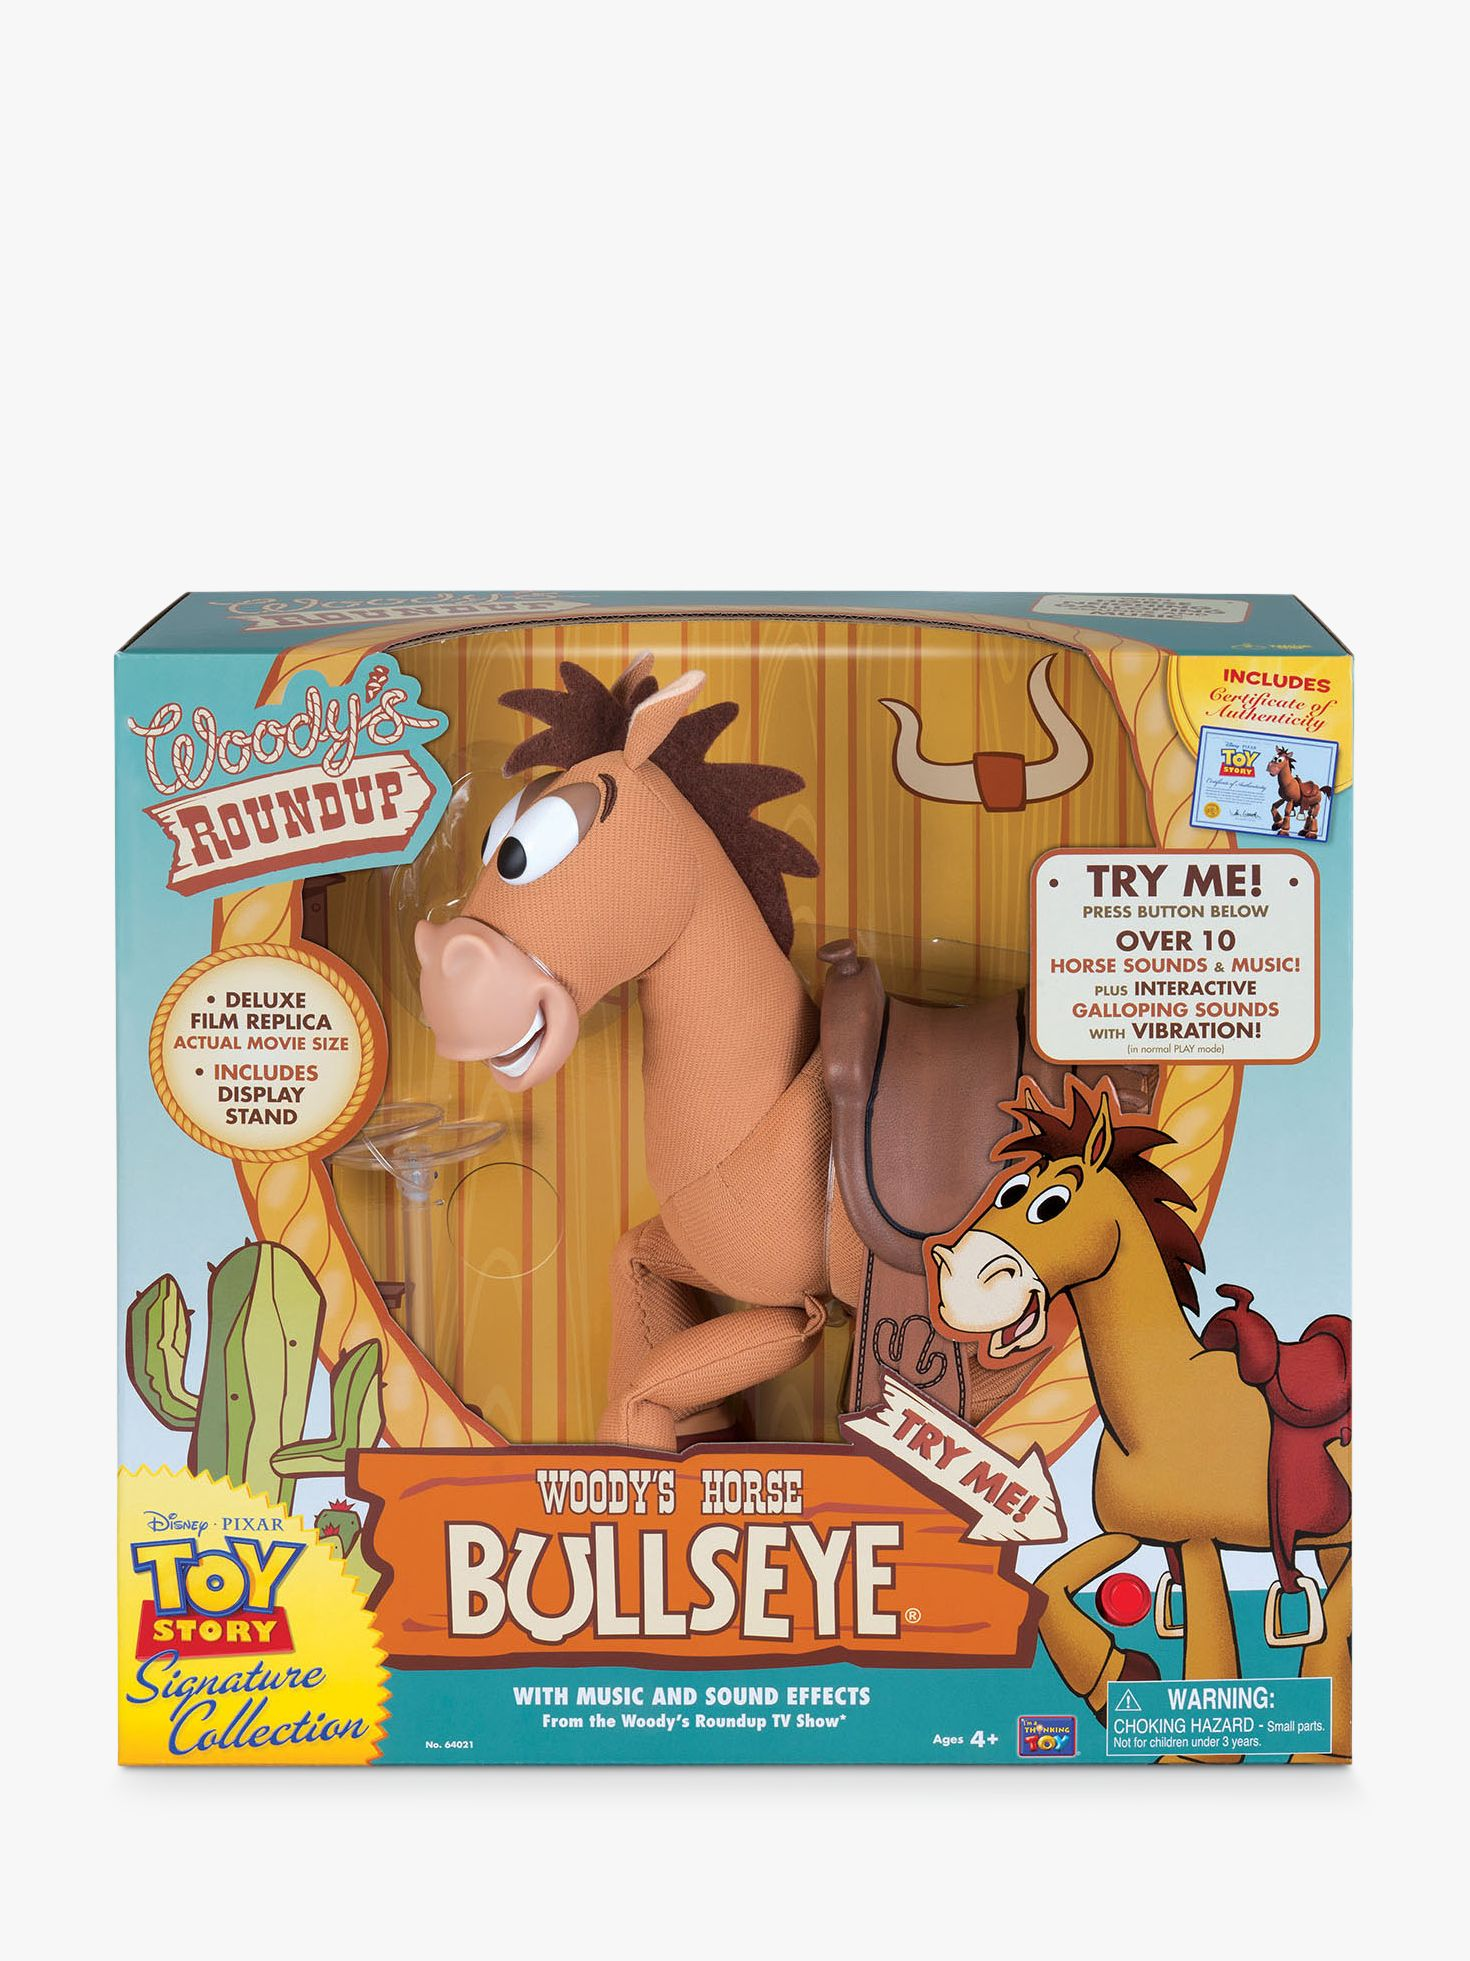 Disney Disney Toy Story Signature Collection Woody's Horse Bullseye Action Figure